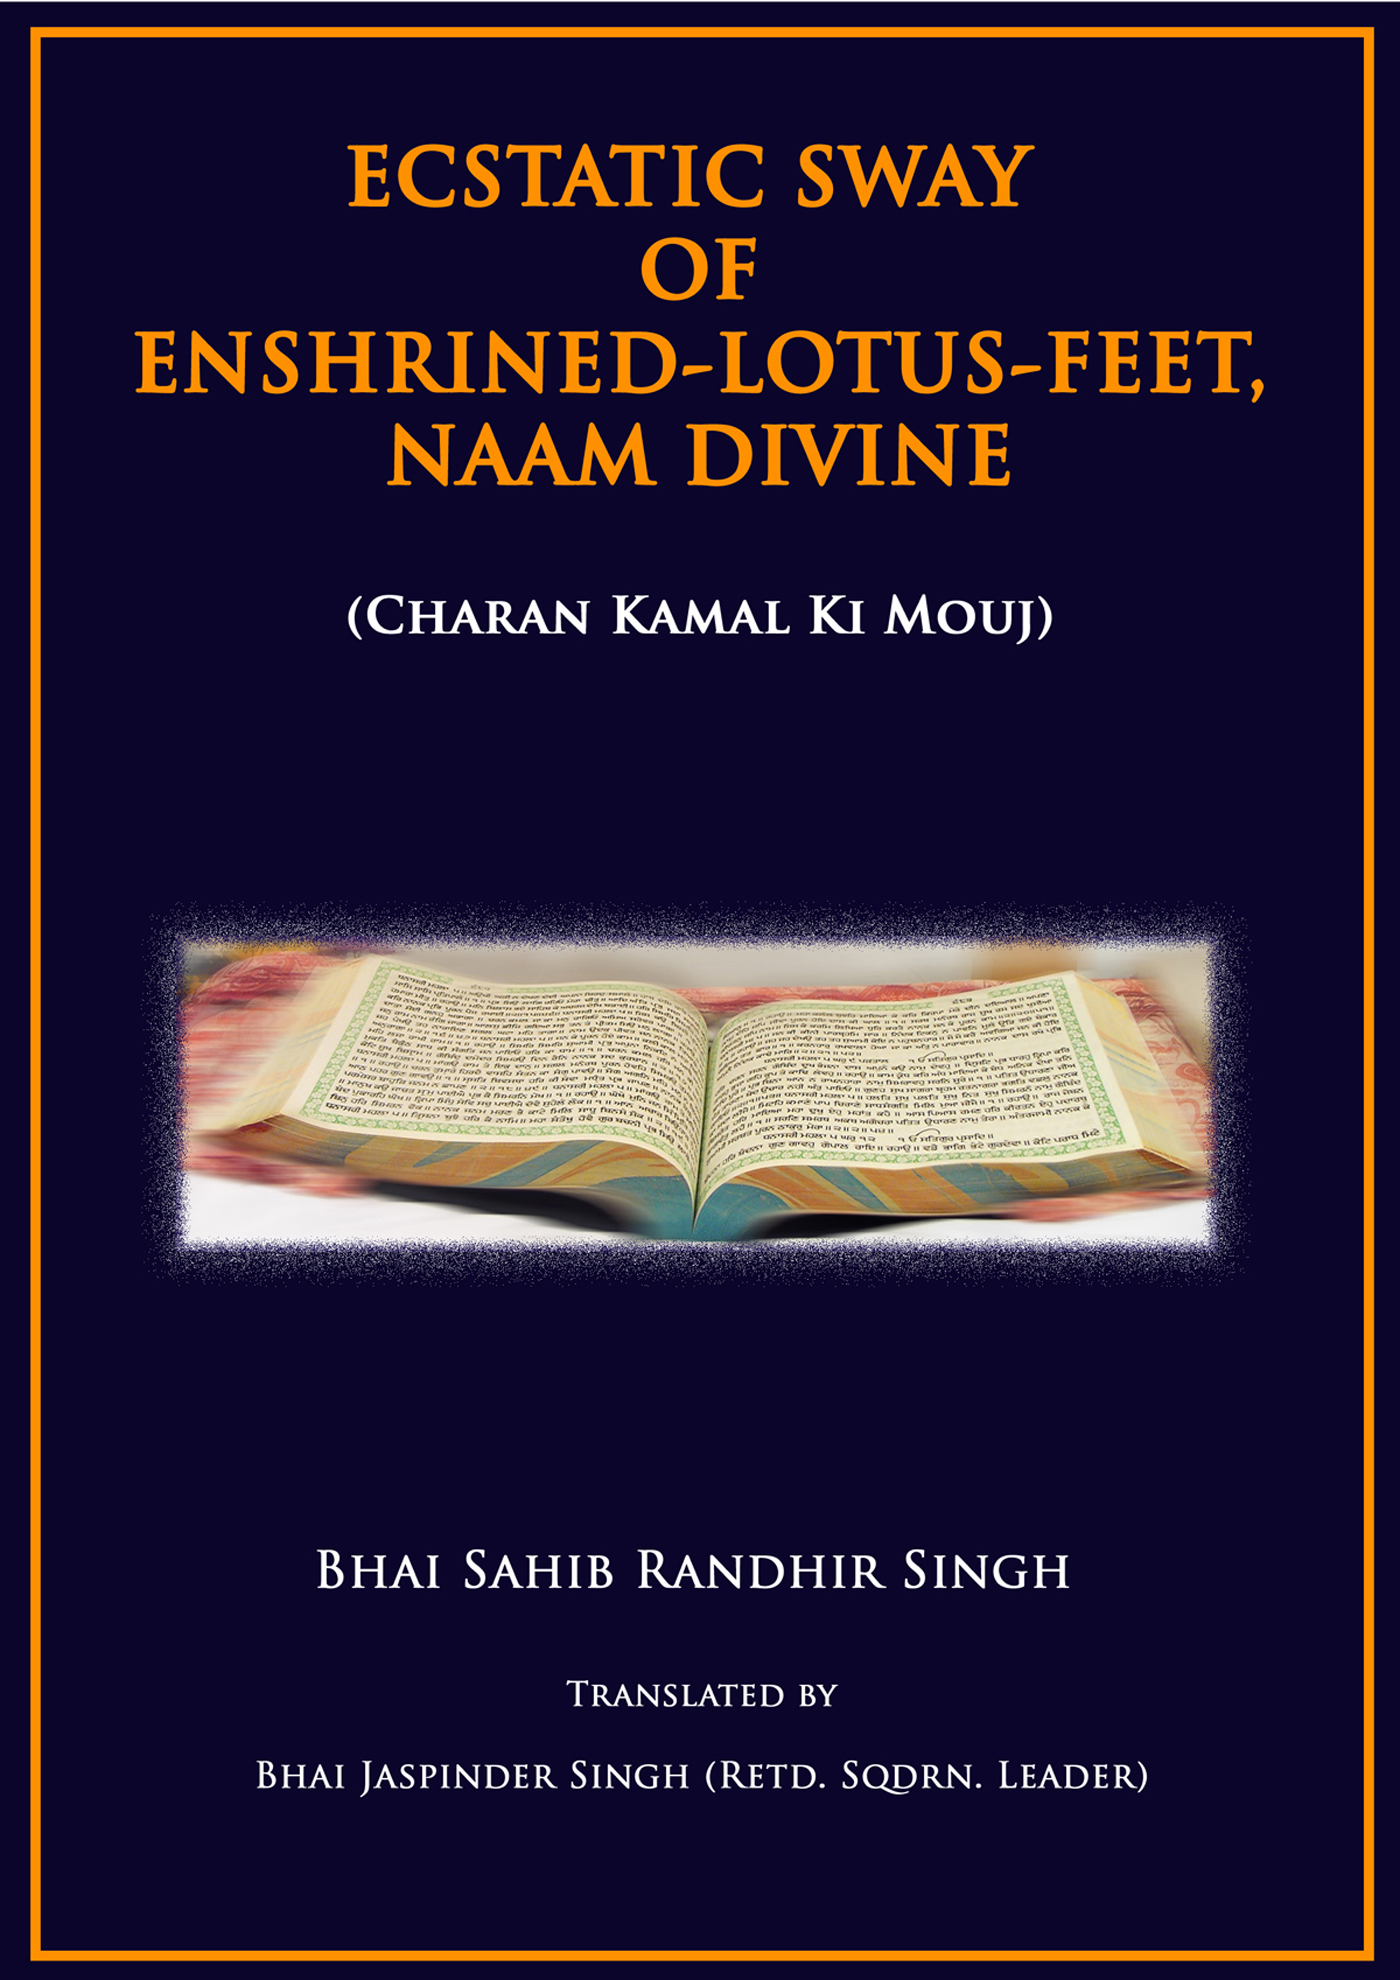 Ecstatic Sway Of Enshrined-Lotus-Feet, Naam Divine